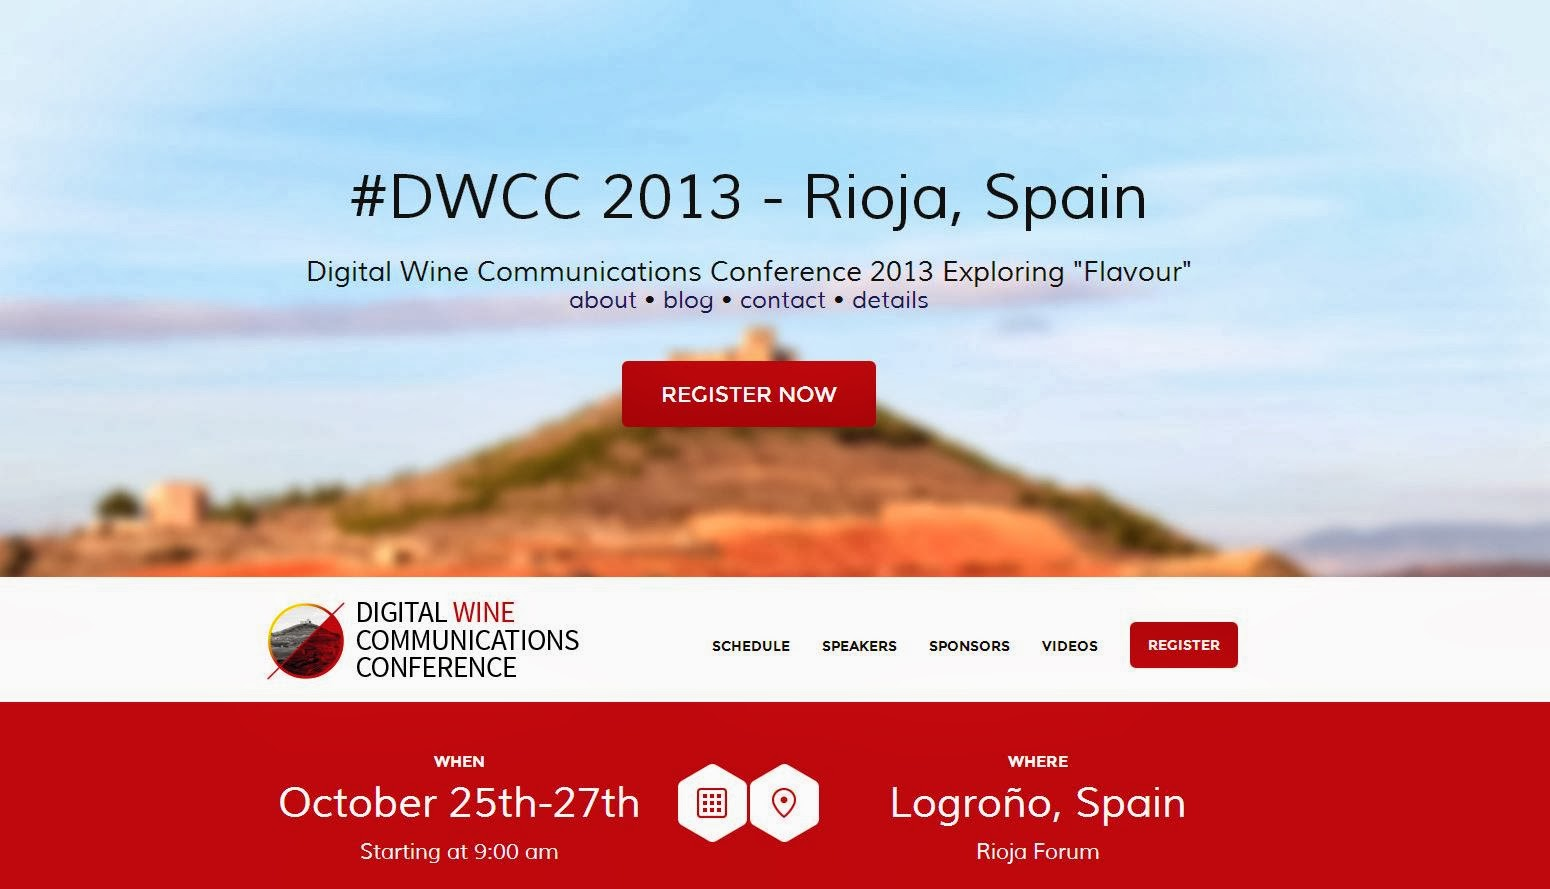 Imagen-Web-Digital-Wine-Communications-Conference